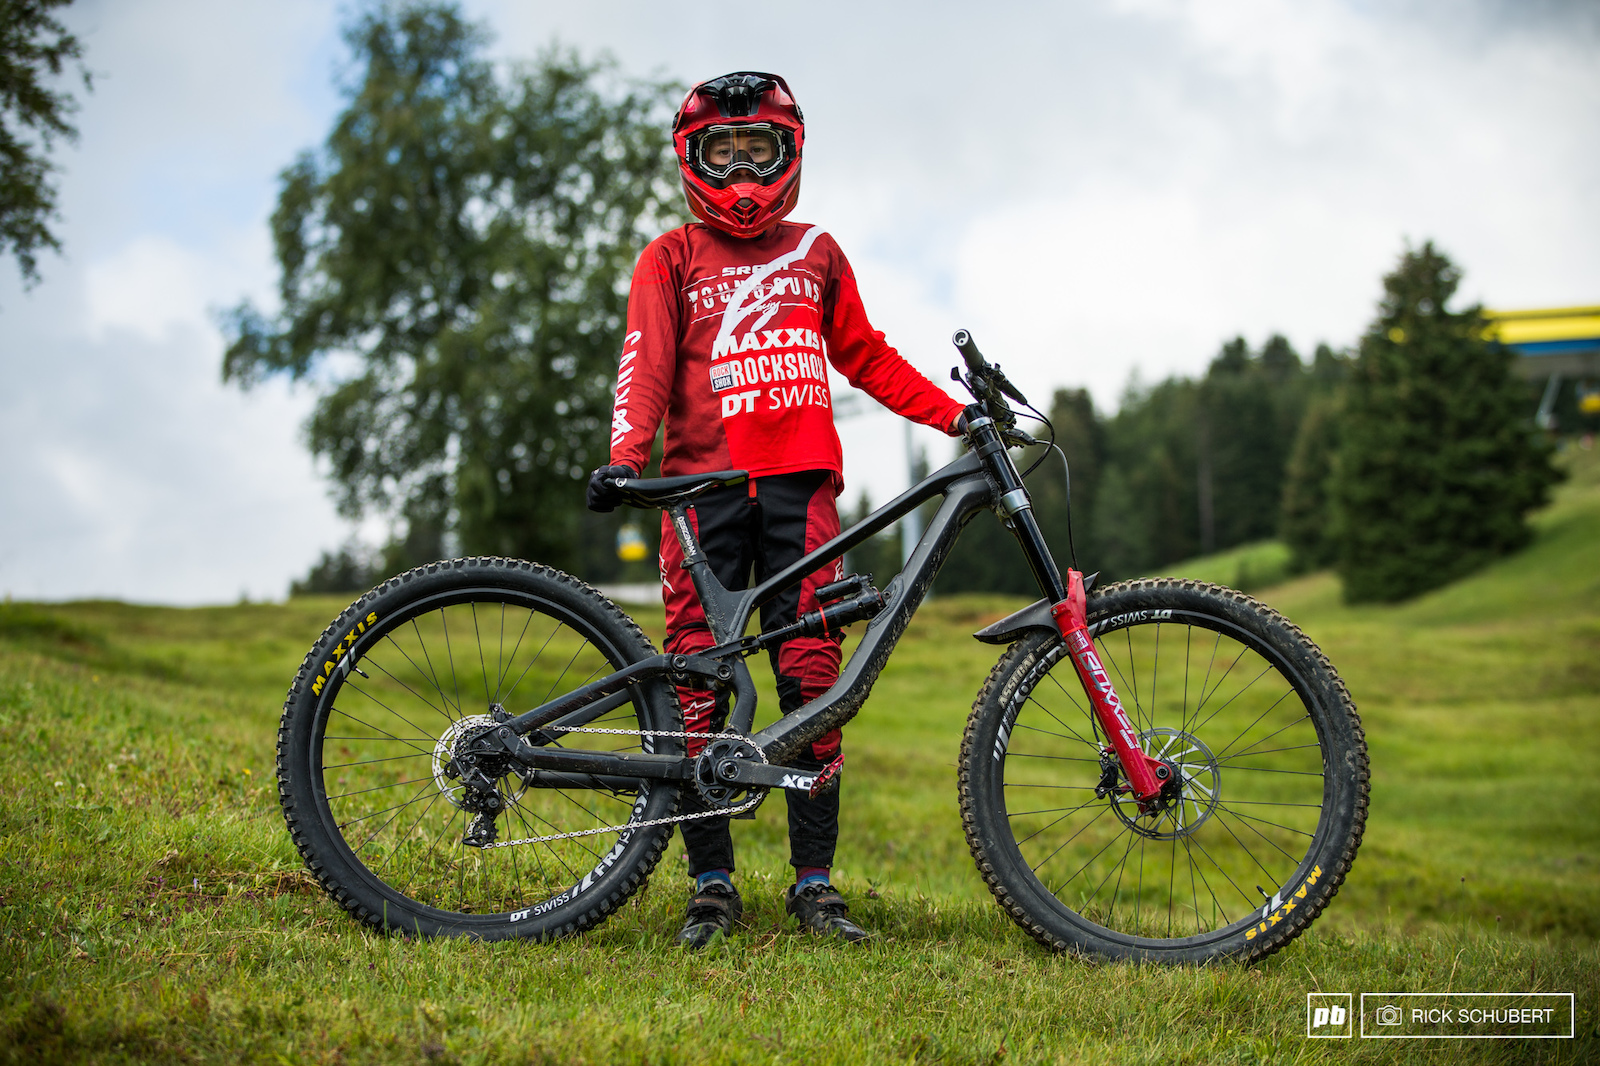 Sram Young Gun Henri Kiefer is just 14 but it feels like he is on the scene forever